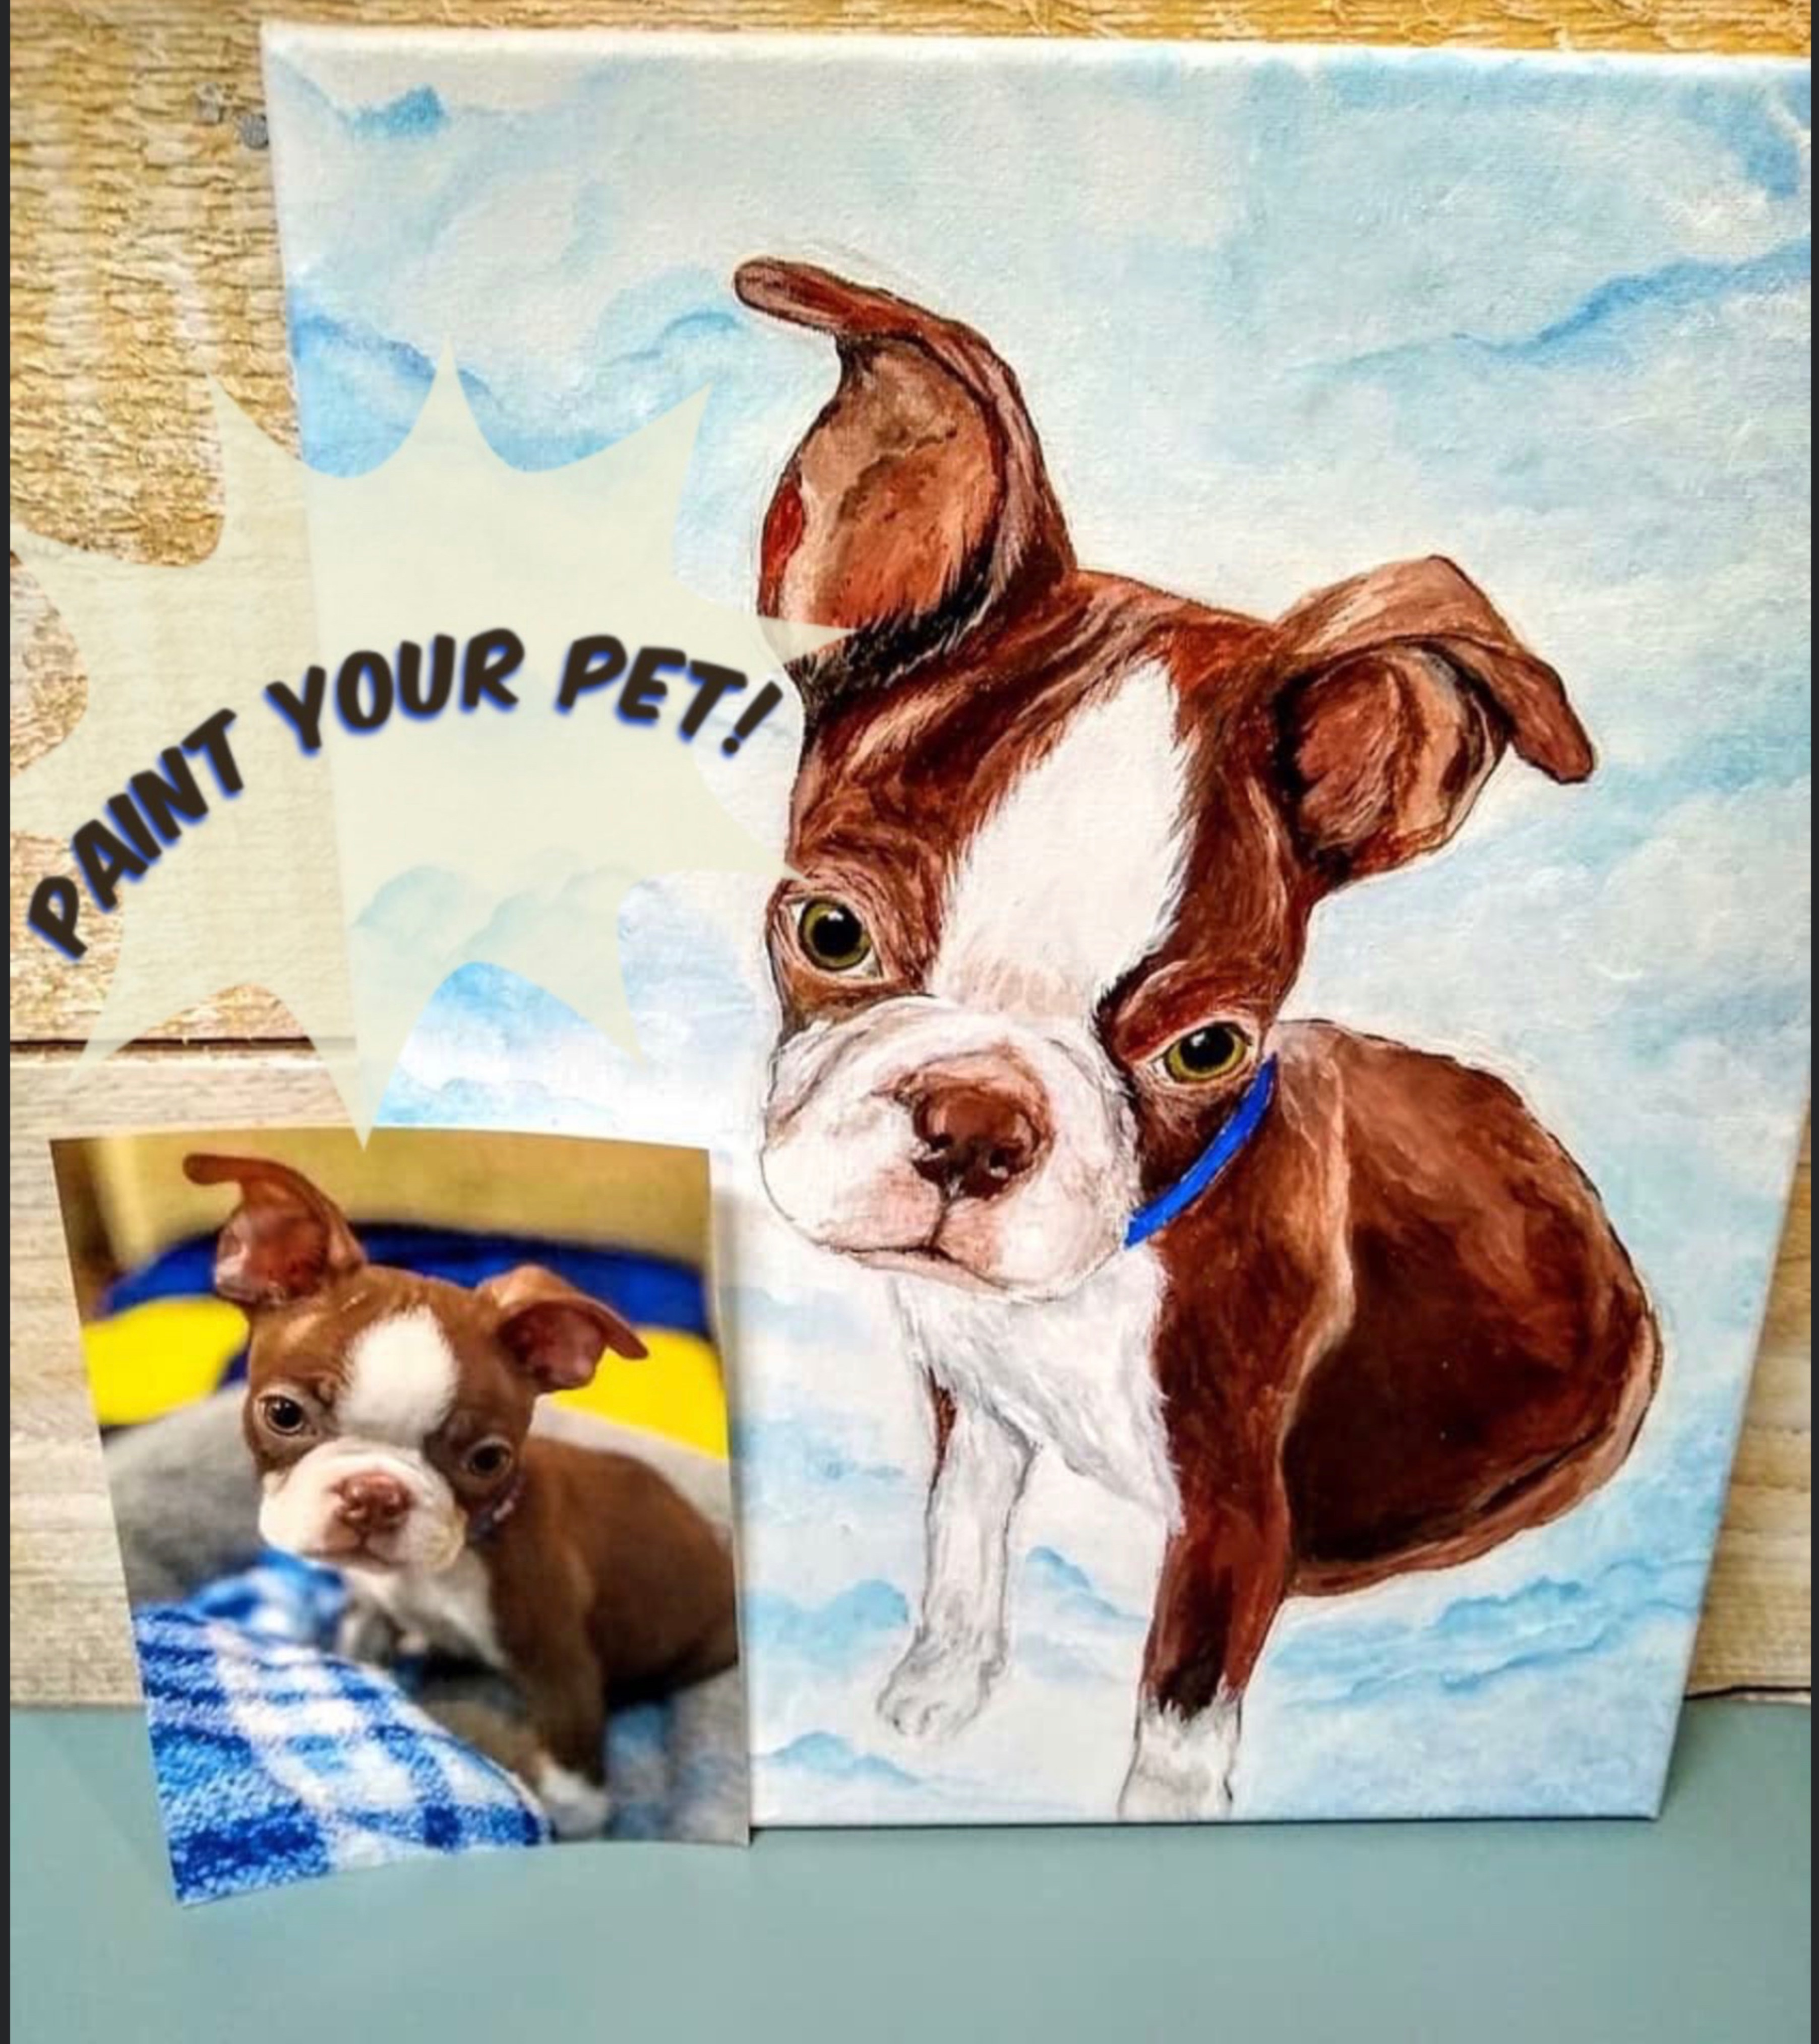 Paint Your Pet Night in Your Home or Office!